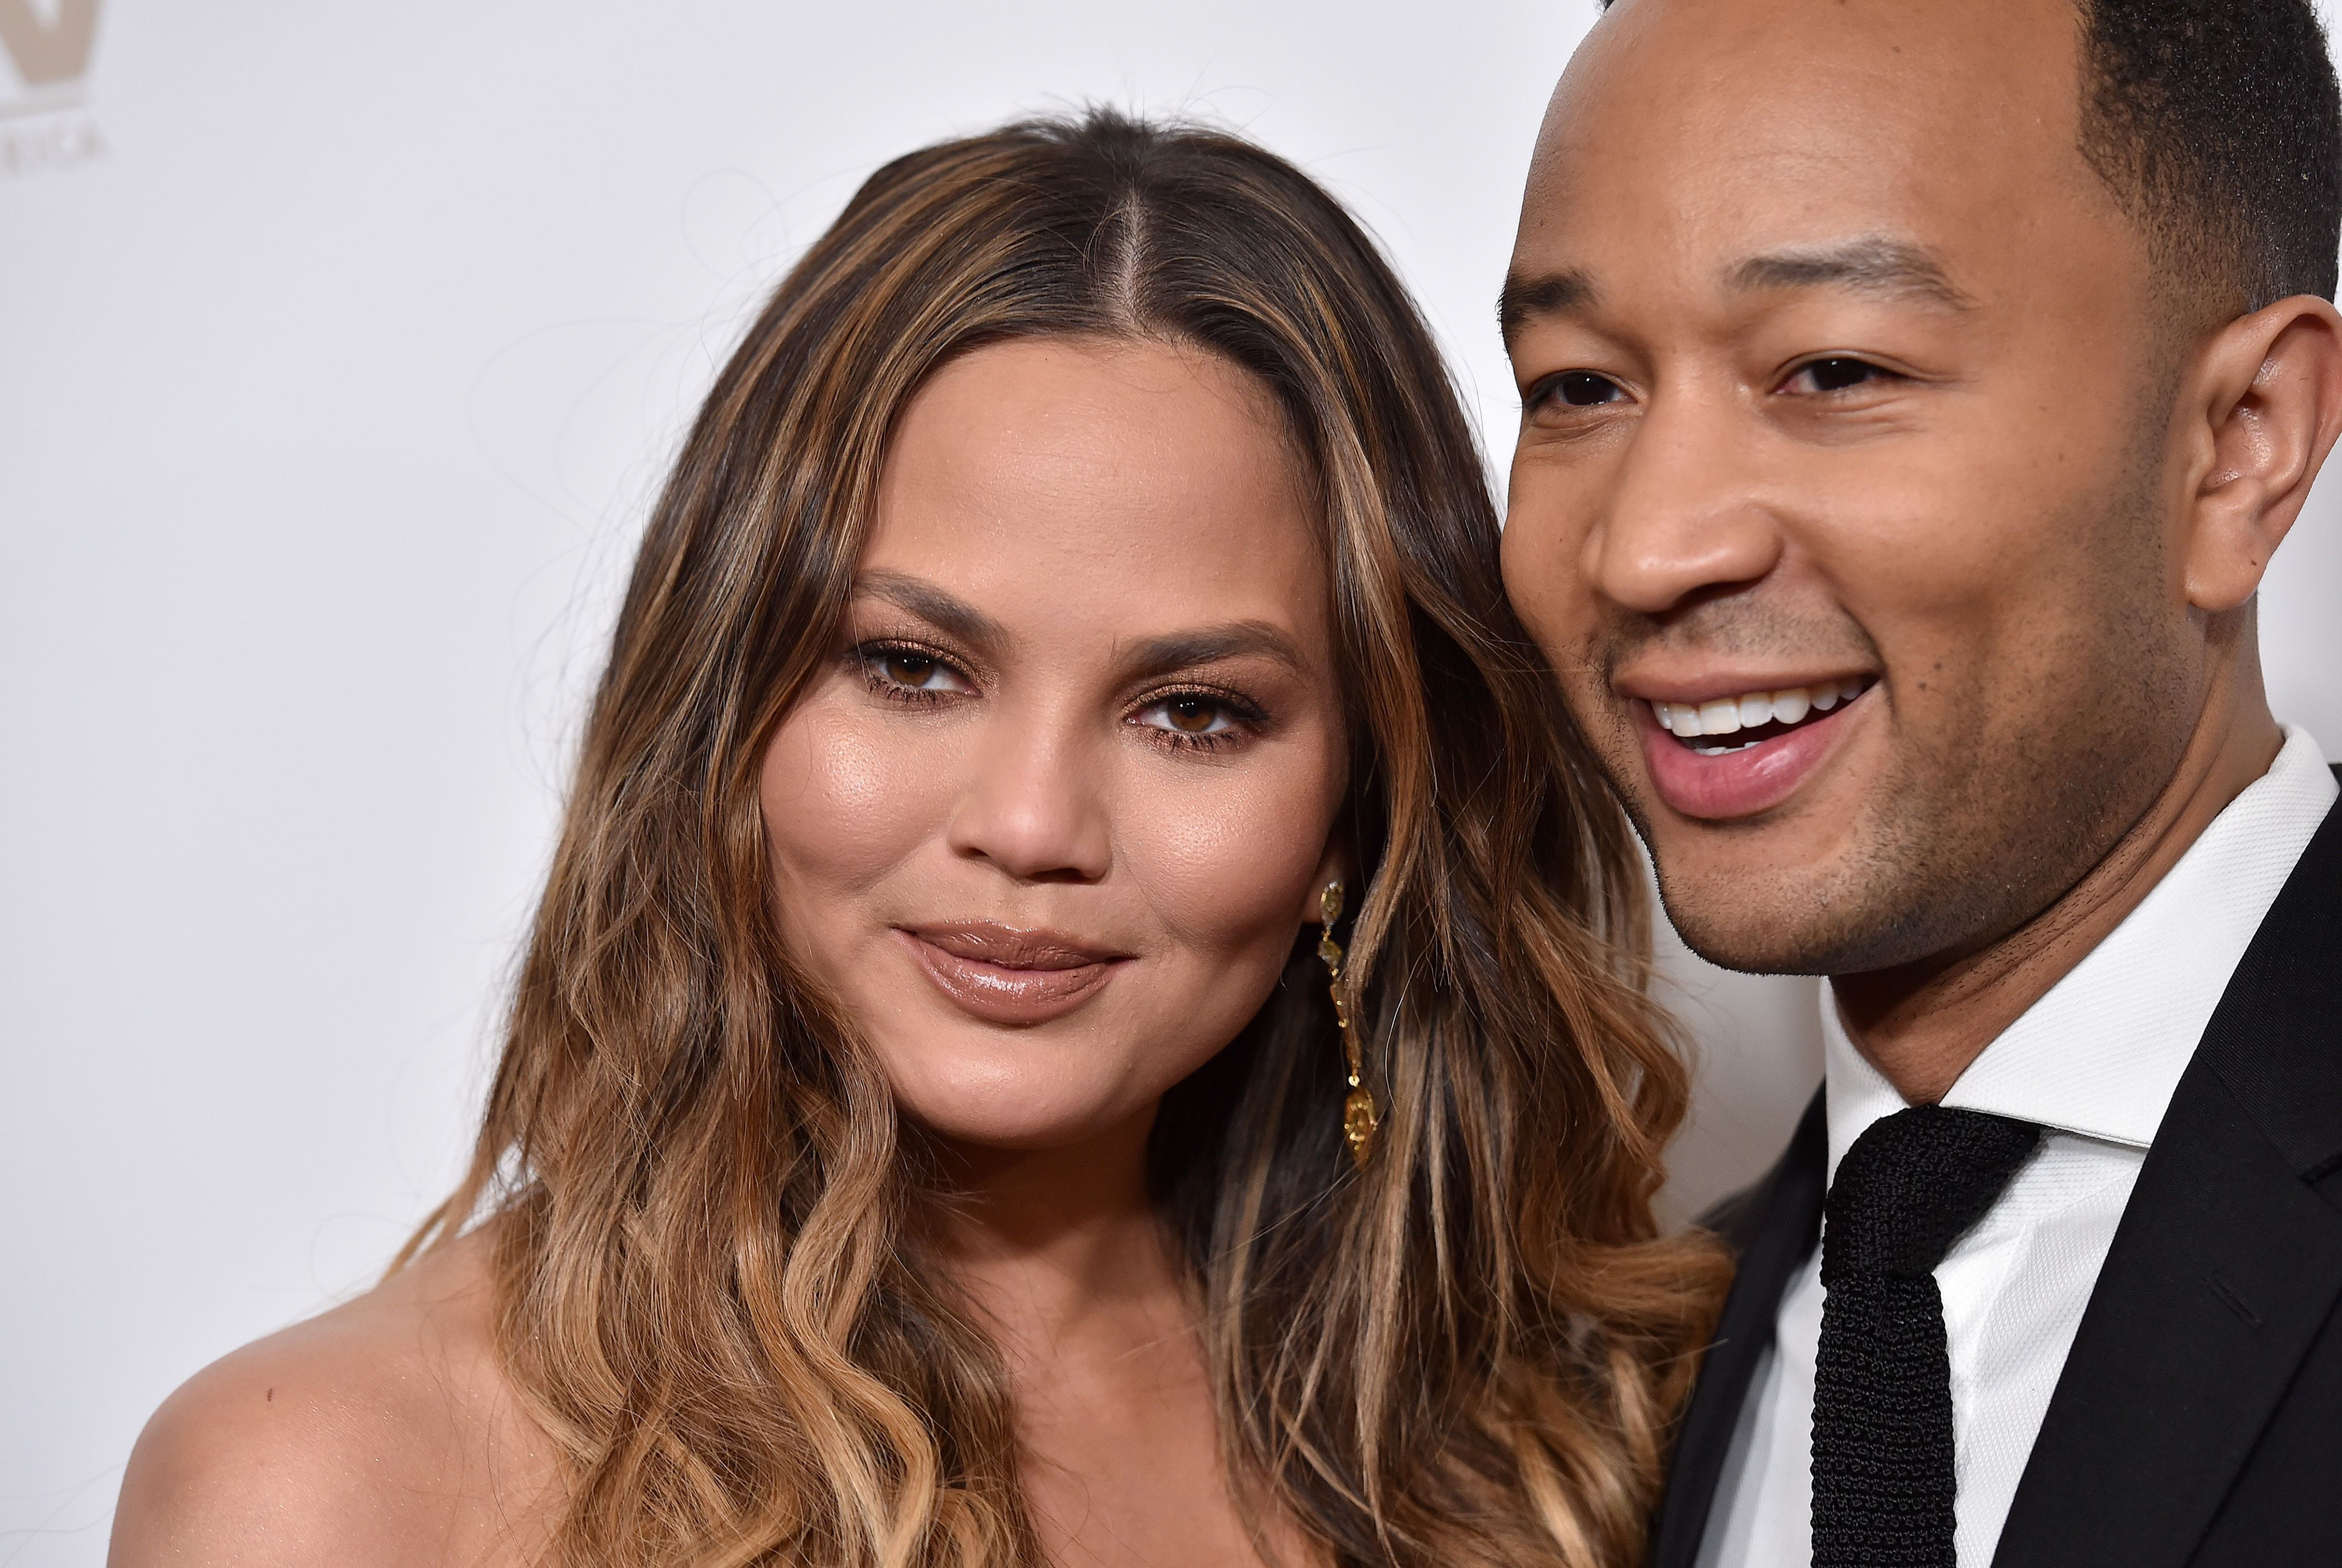 Chrissy Teigen Kindly Fixed Ivanka Trumps Tweet for Her recommendations